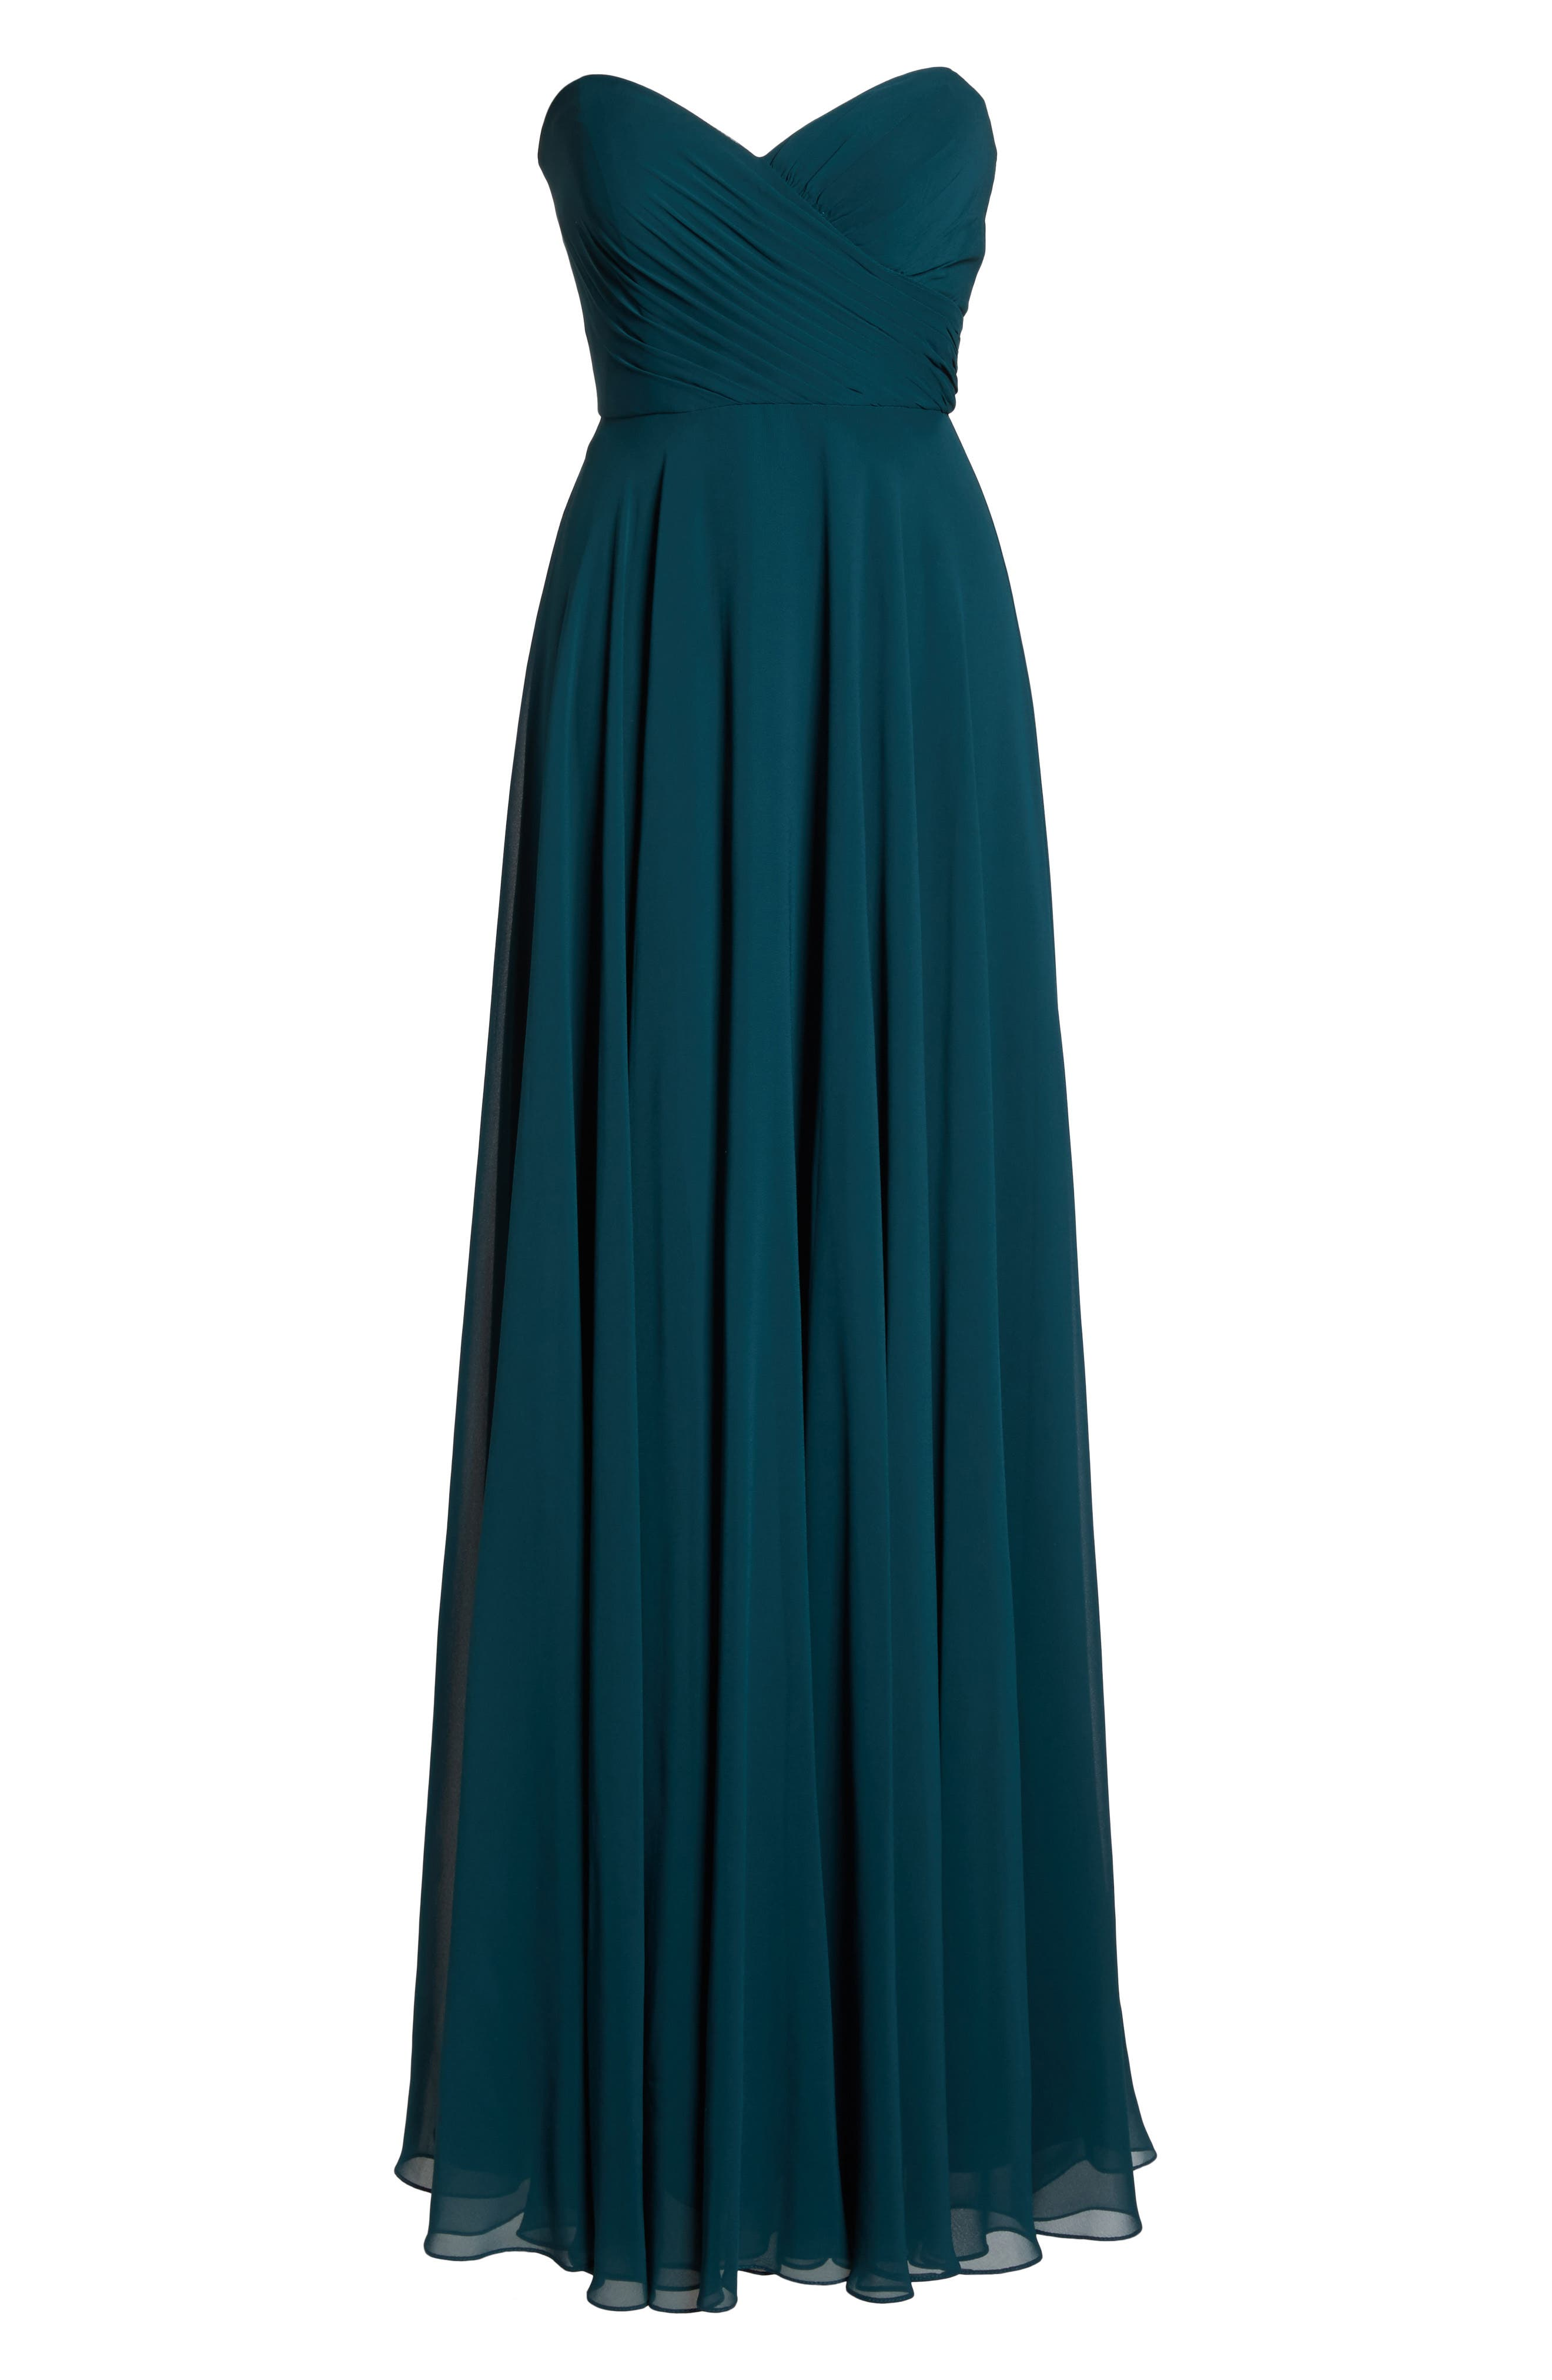 JENNY YOO,                             Adeline Strapless Chiffon Gown,                             Alternate thumbnail 6, color,                             444